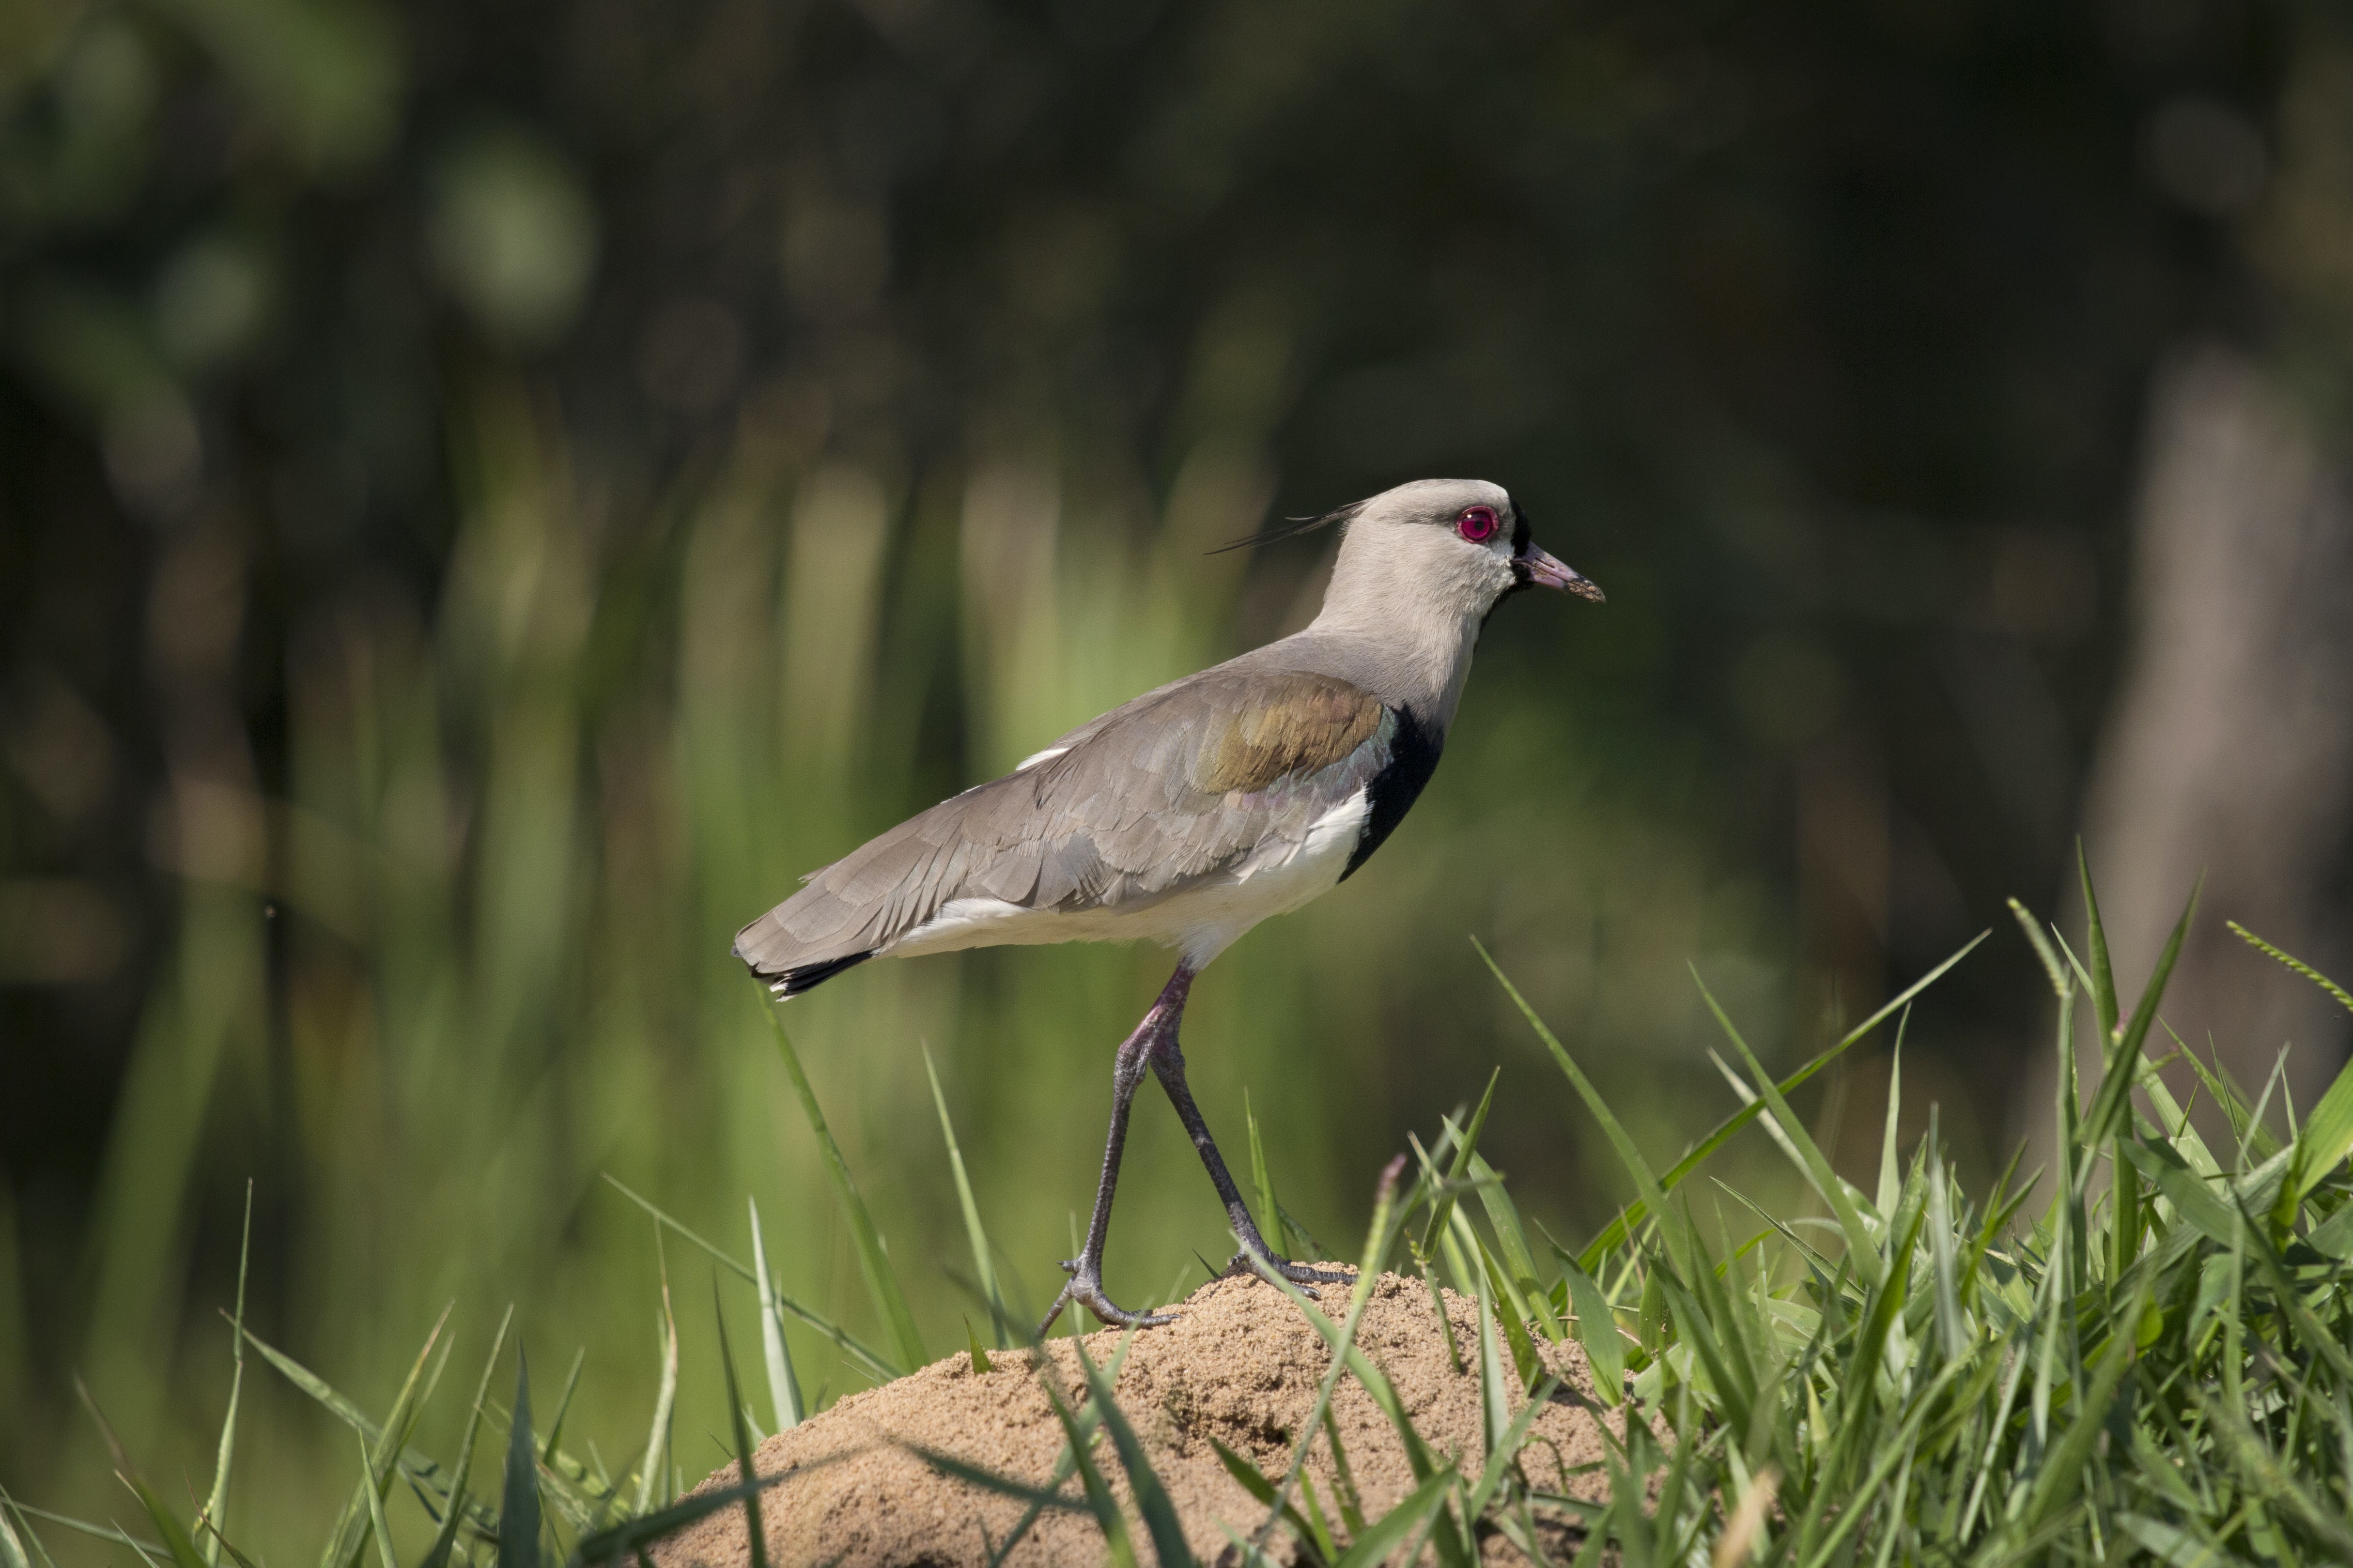 Bird with red eye sitting on a mound of dir on grass